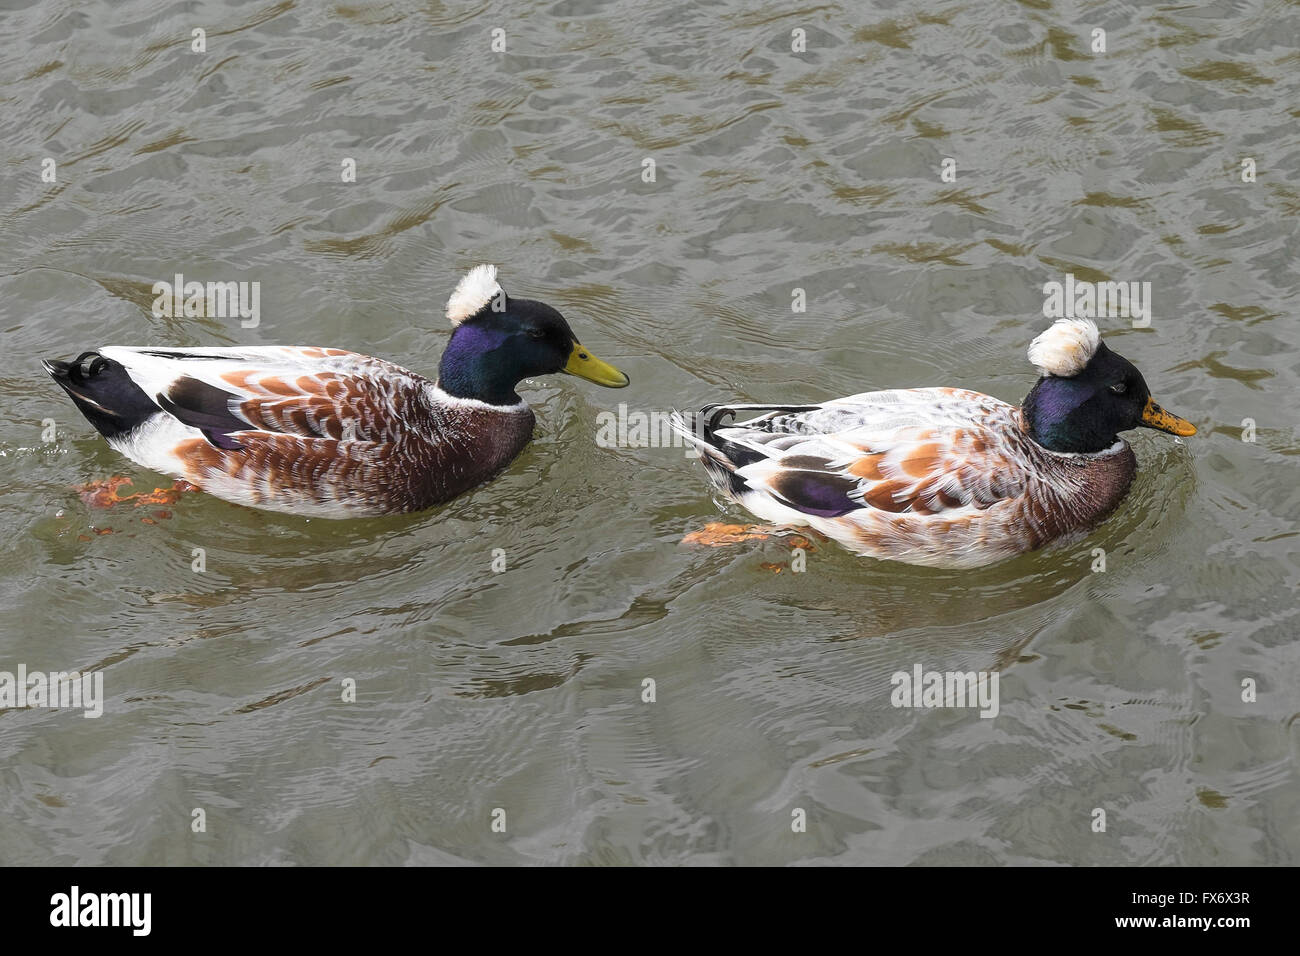 Two Crested Ducks. - Stock Image